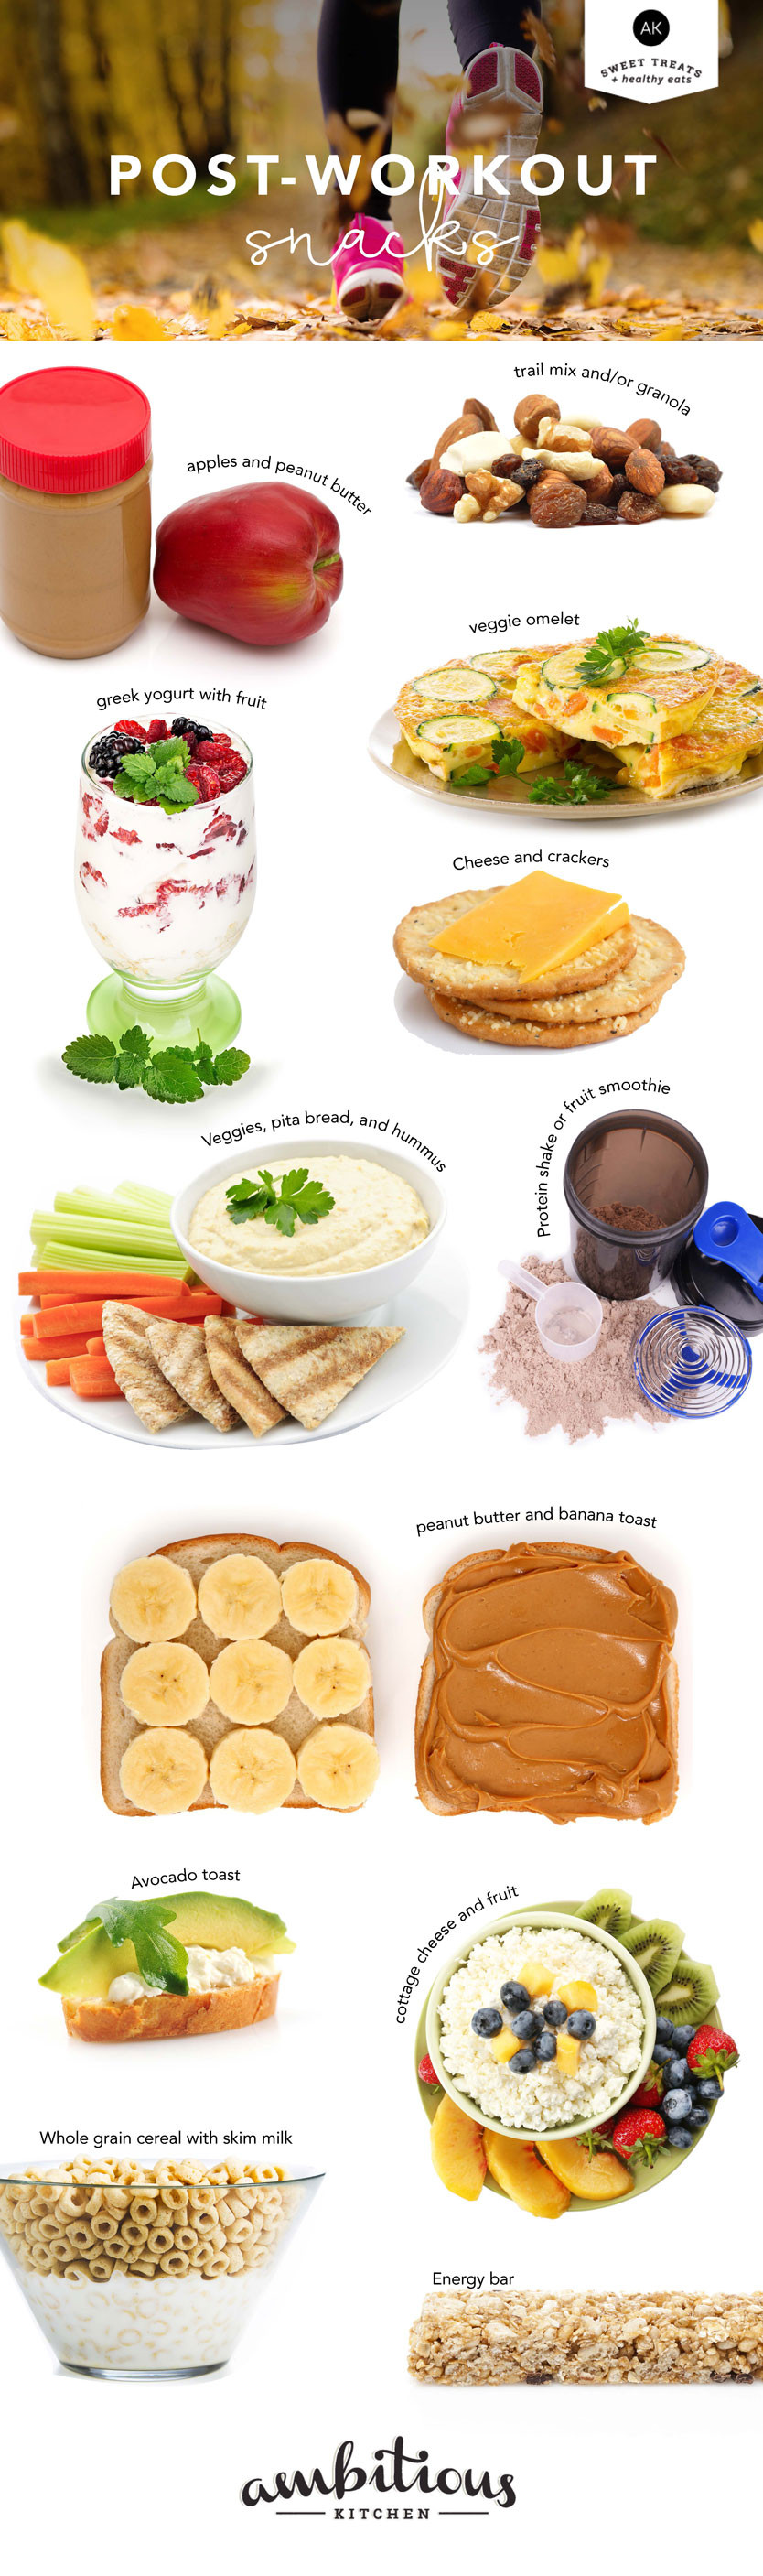 Healthy Snacks After Workout  Wellness Wednesday 12 Healthy Post Workout Snacks When